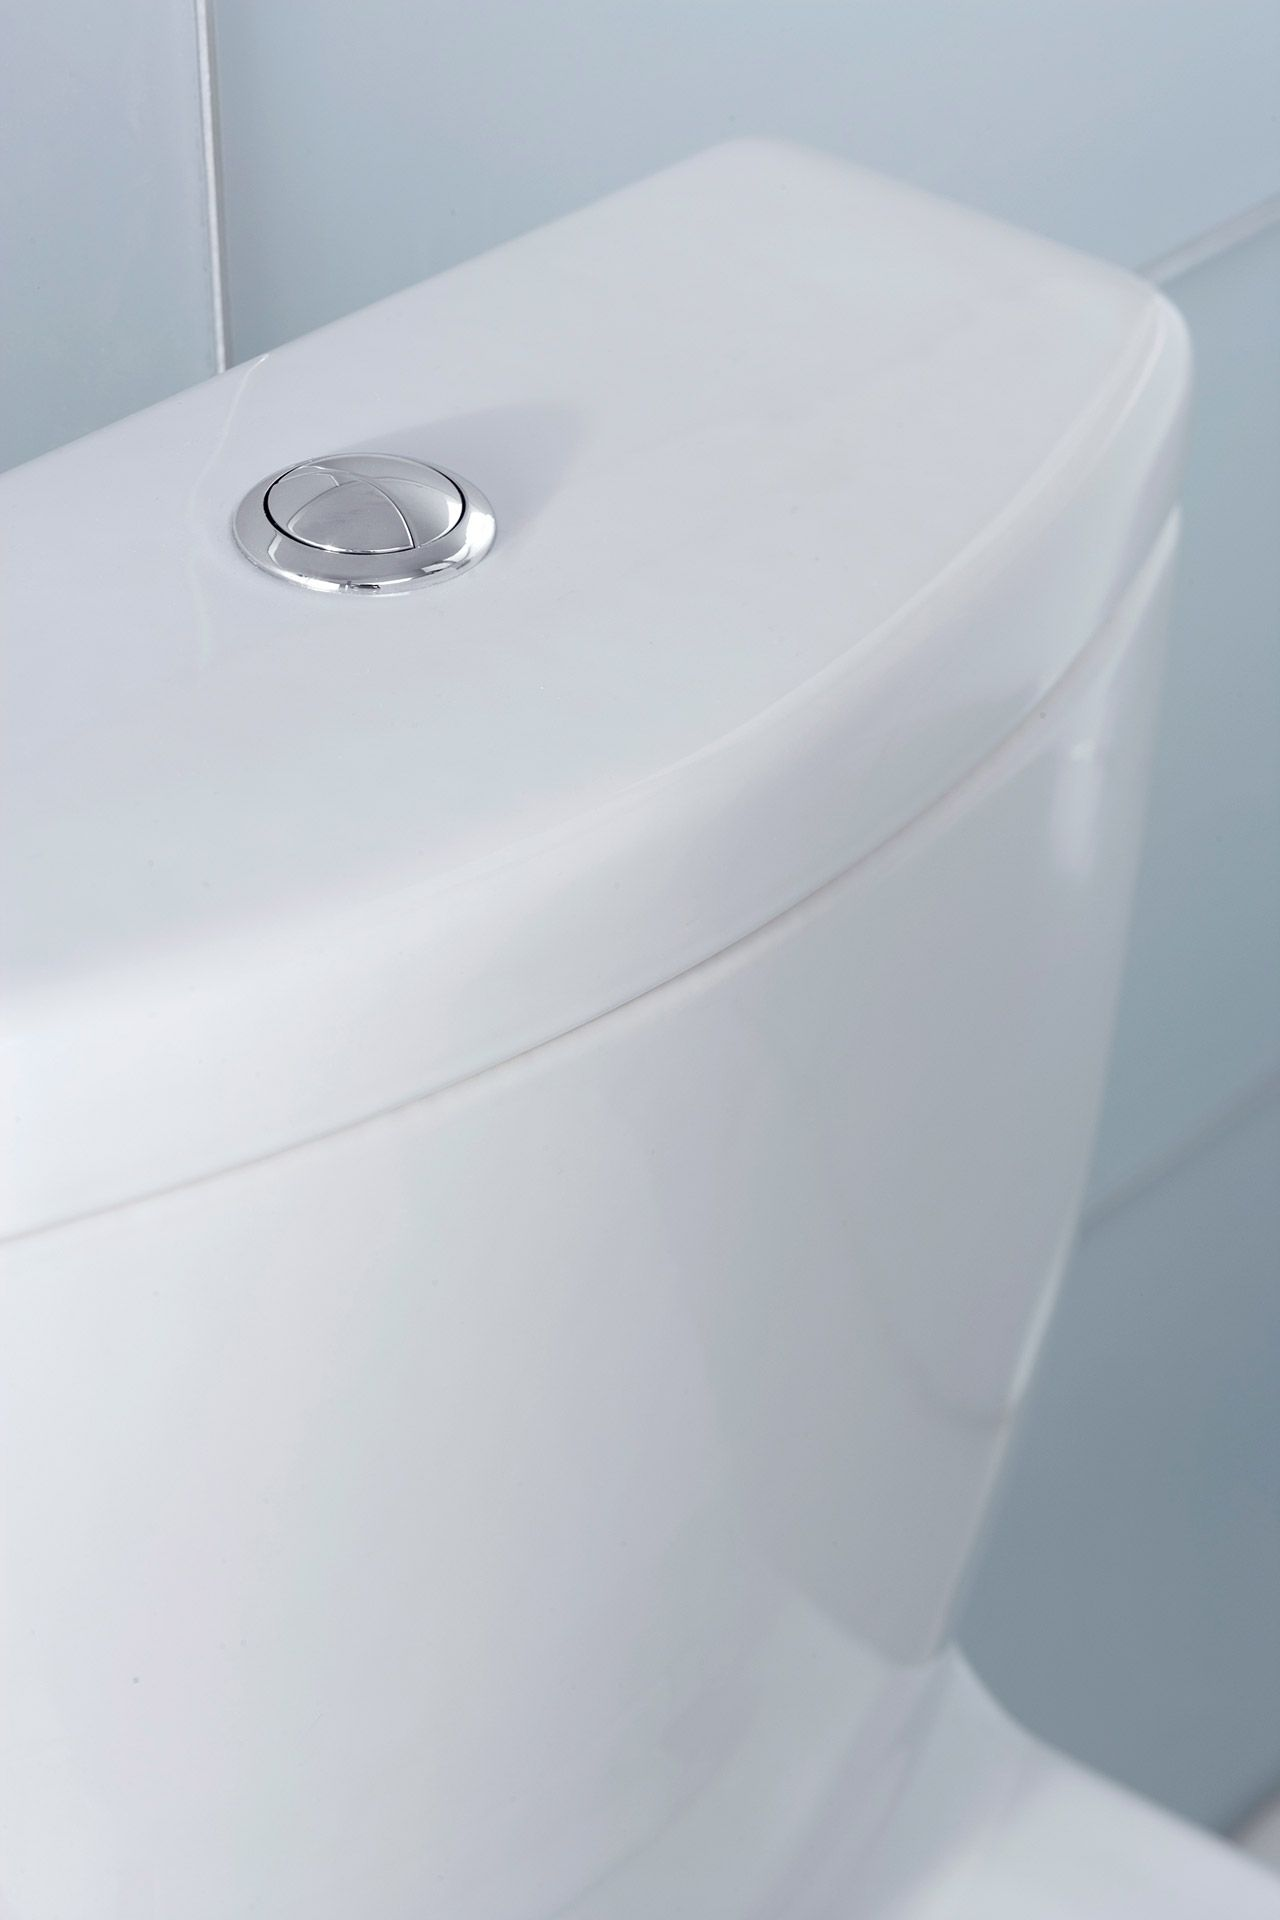 ToTo Aquia II Dual Flush Two-Piece Toilet, 1.6 GPF & 0.9 GPF ...